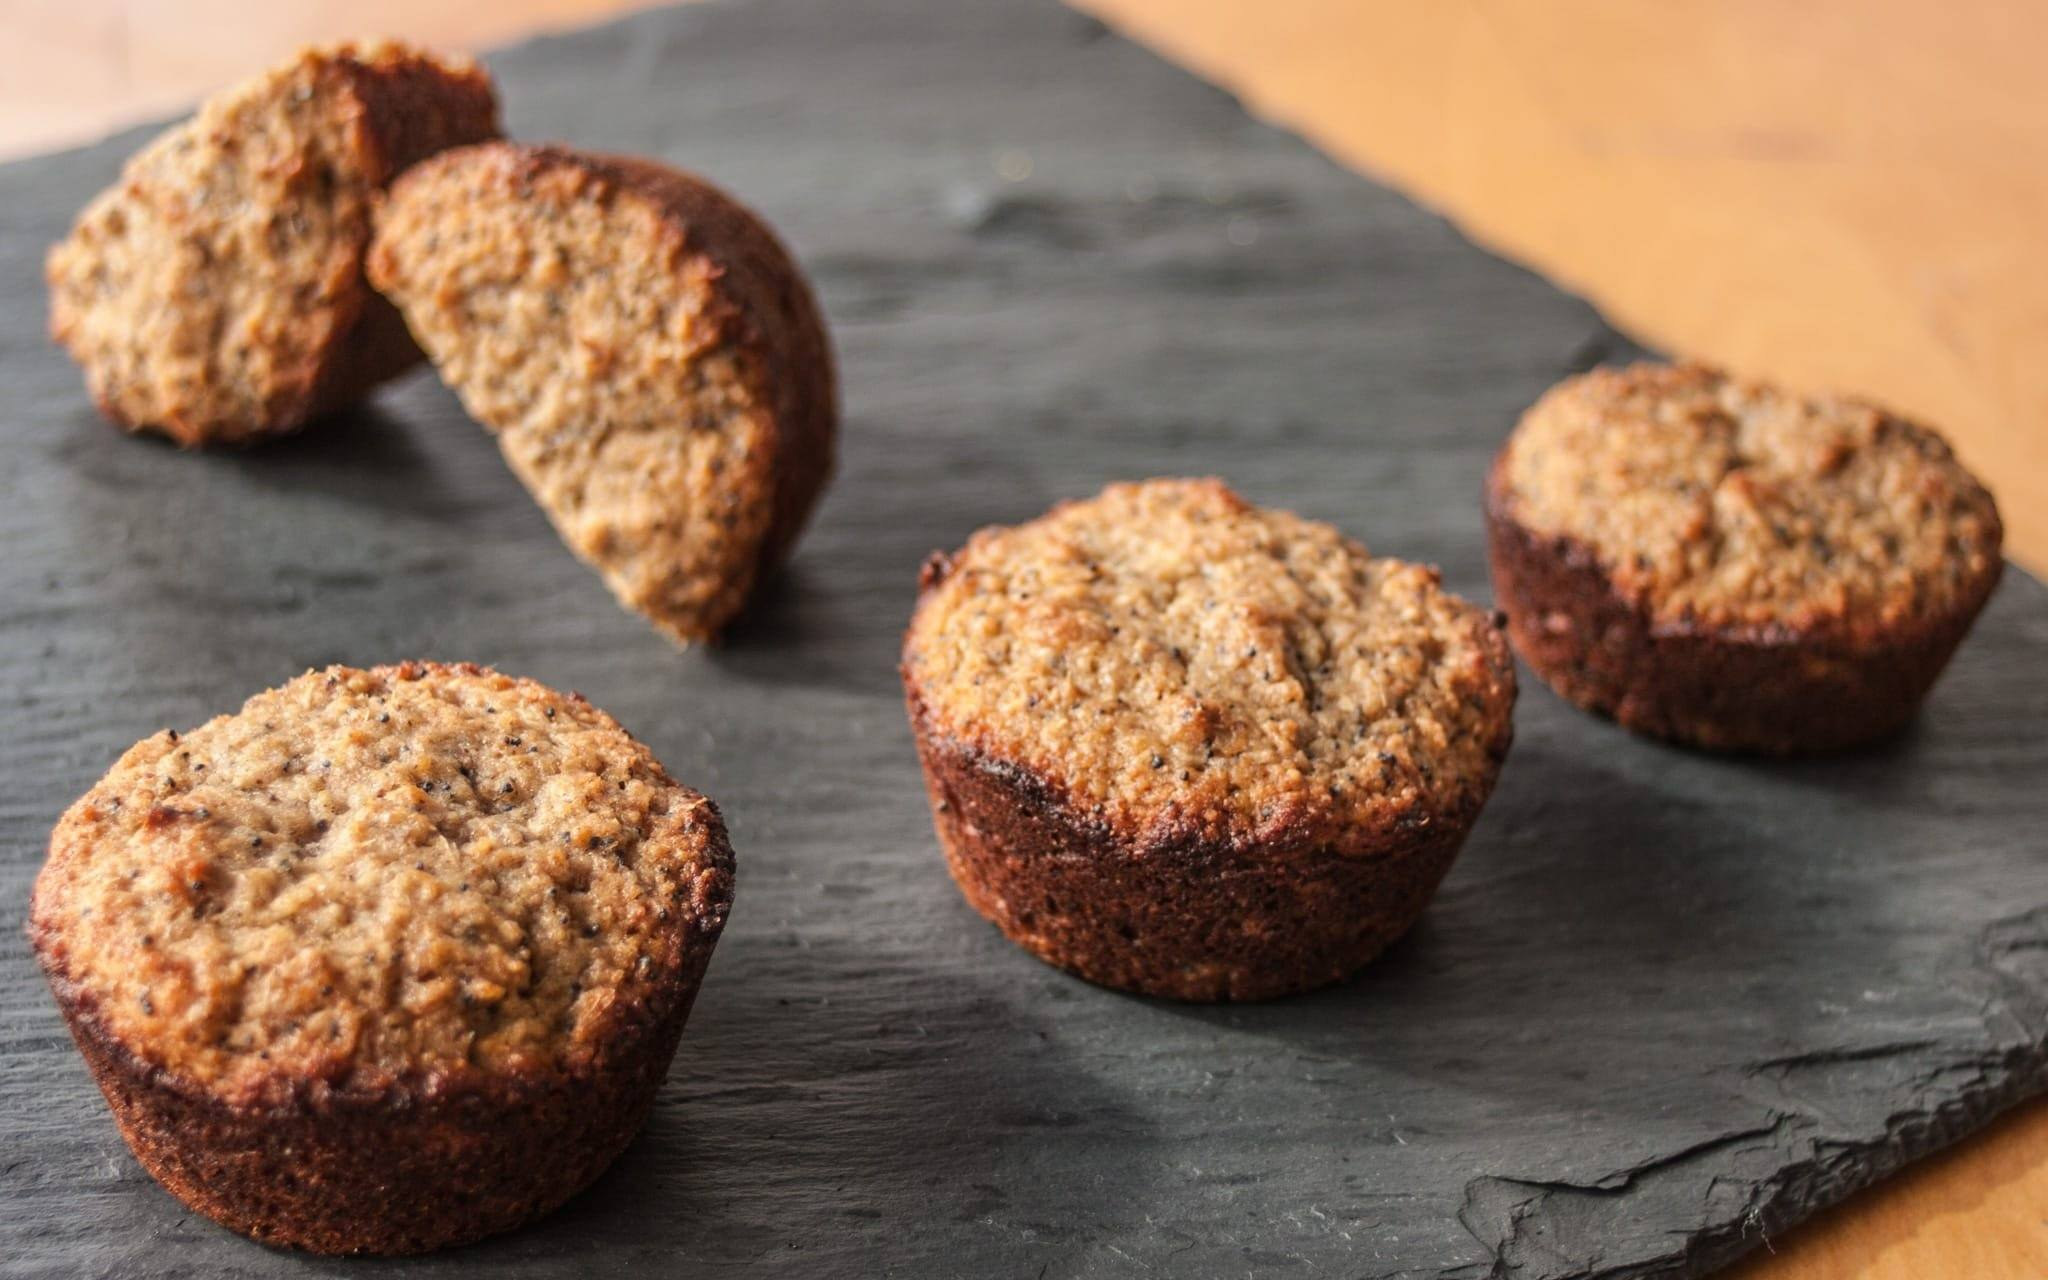 Recipe: Spent Grain Lemon Poppy Seed Muffins